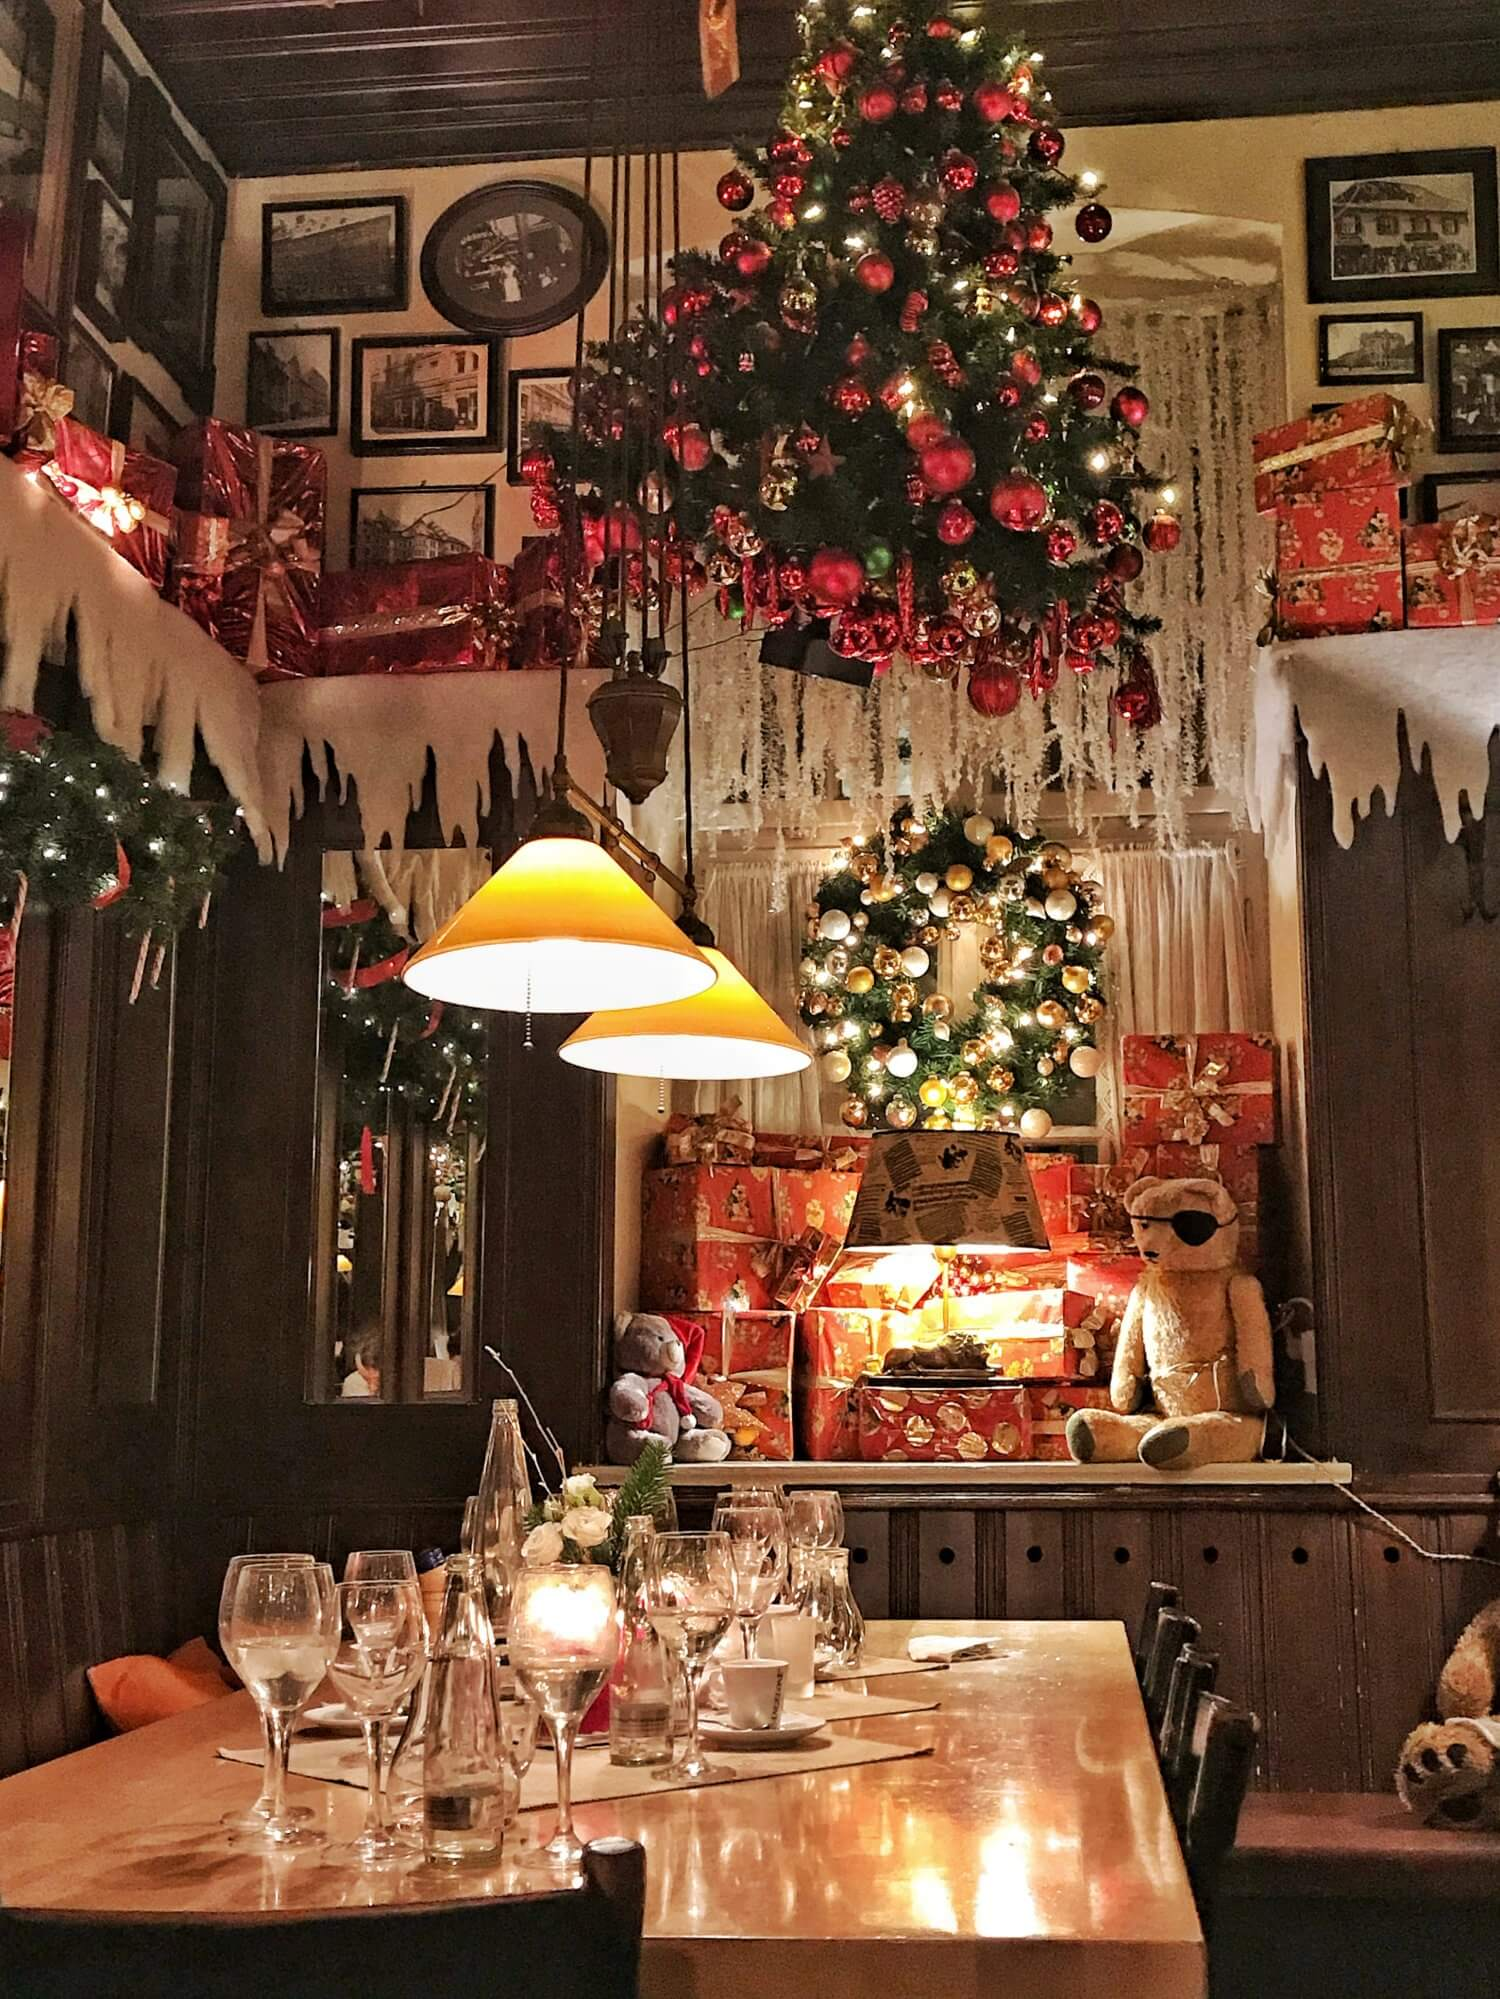 Liebighof restaurant at Christmas time